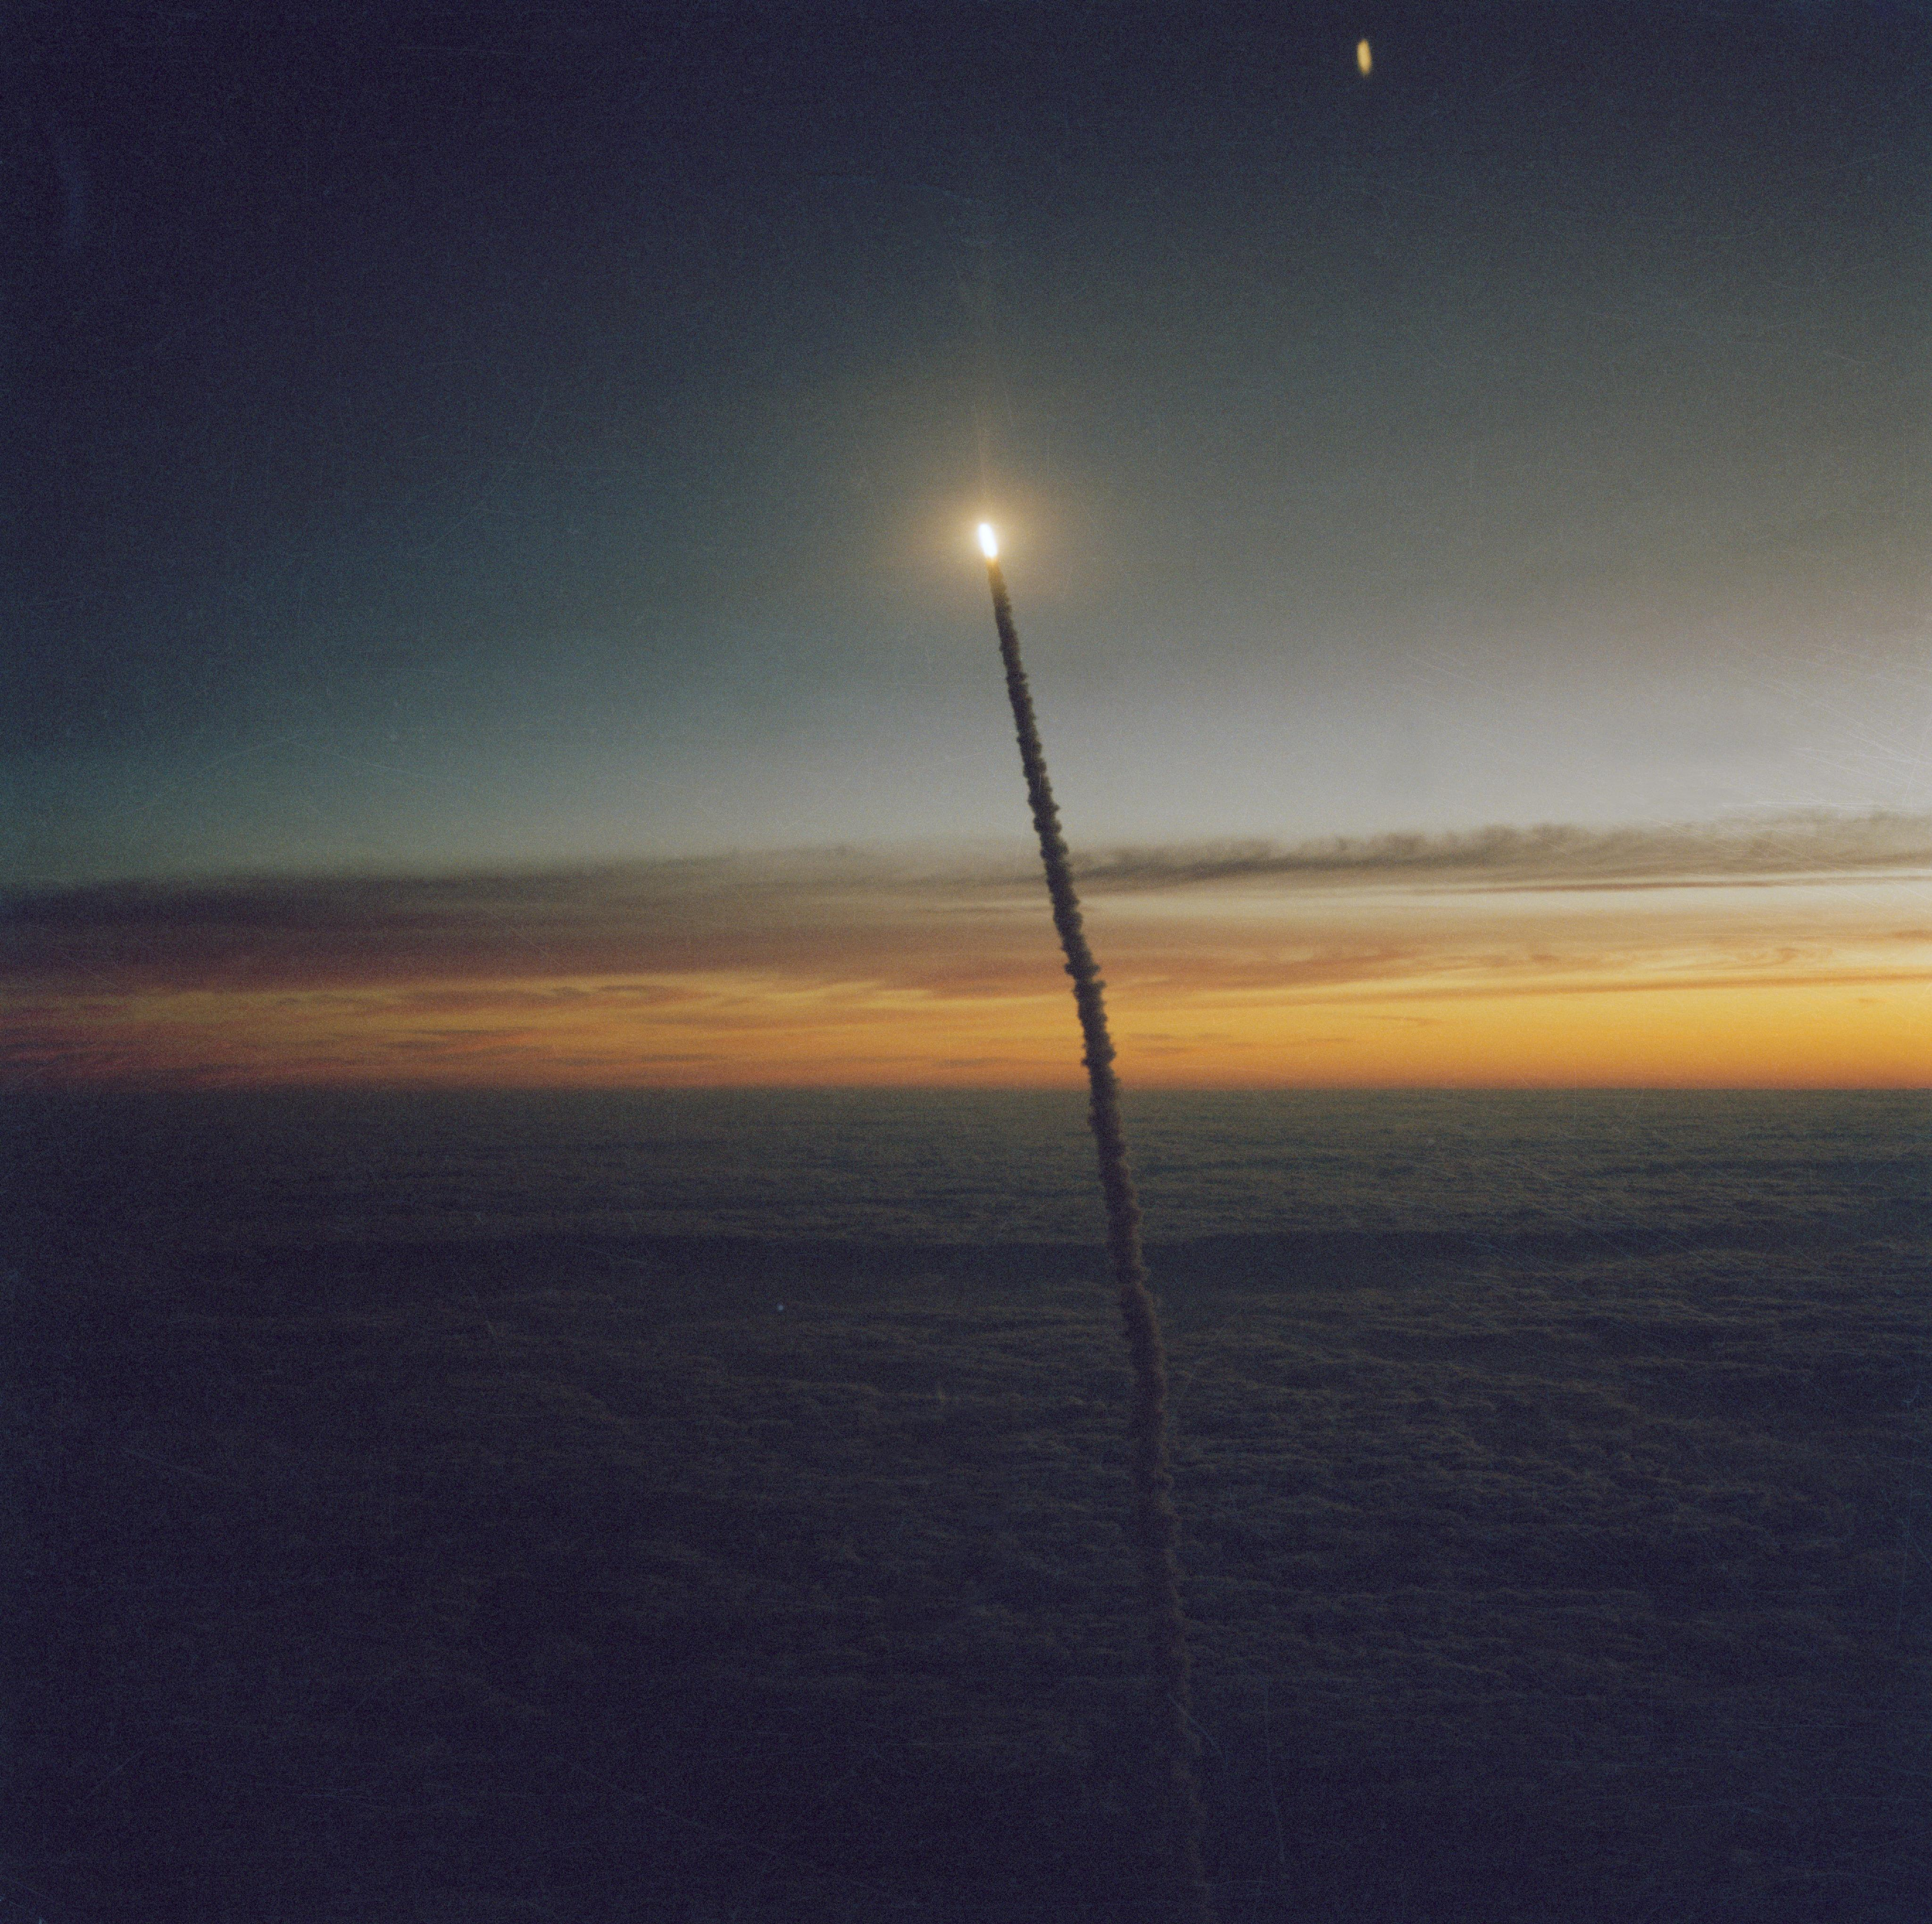 NASA's Challenger space shuttle lifts off on mission STS-41G.